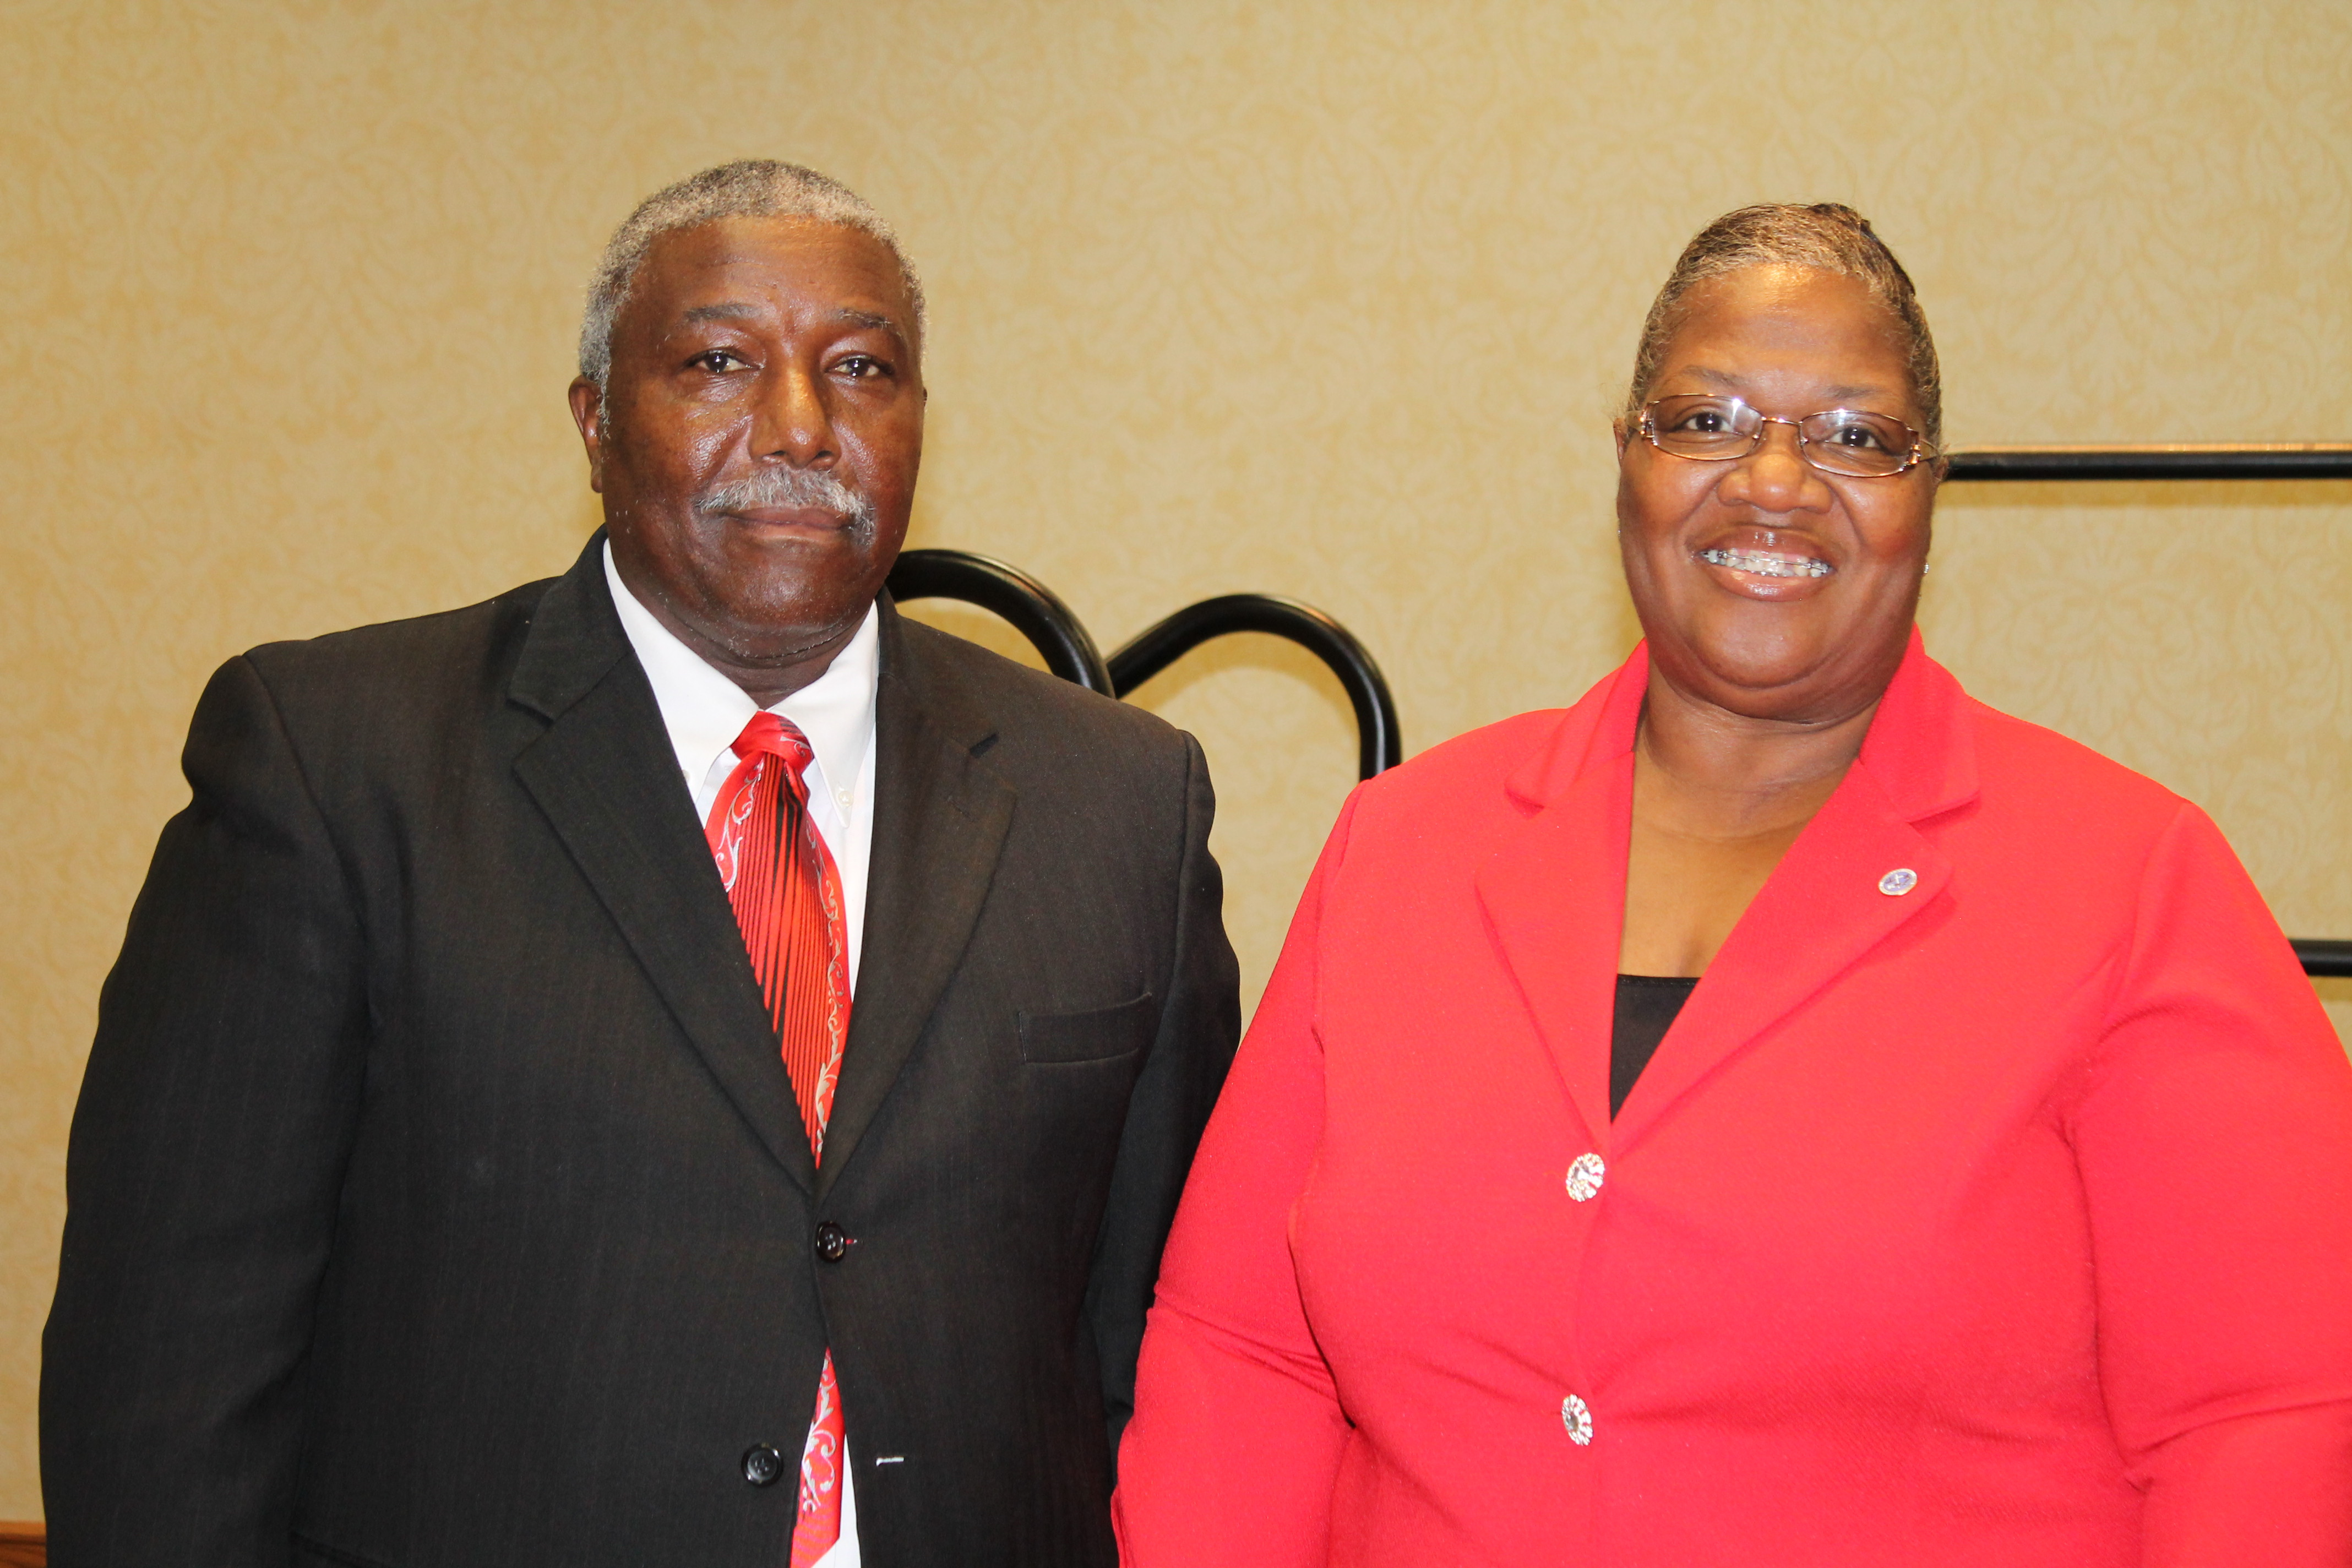 Rev. and Presiding Elder Mathis